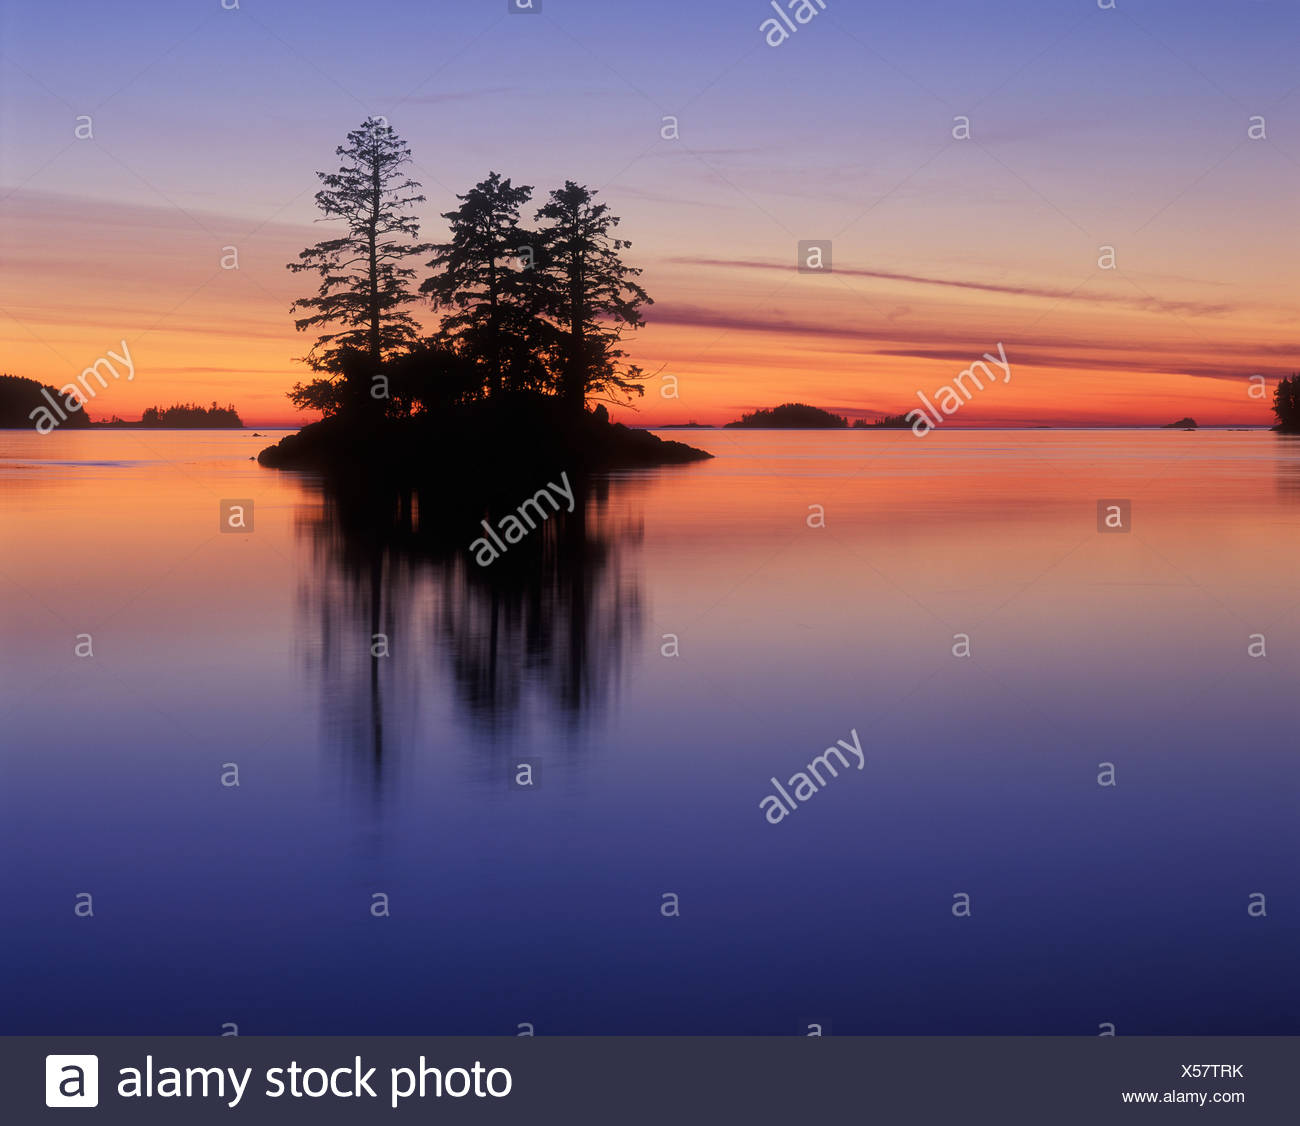 Island of south Moresby, Gwaii Haanas National Park, British Columbia, Canada. - Stock Image